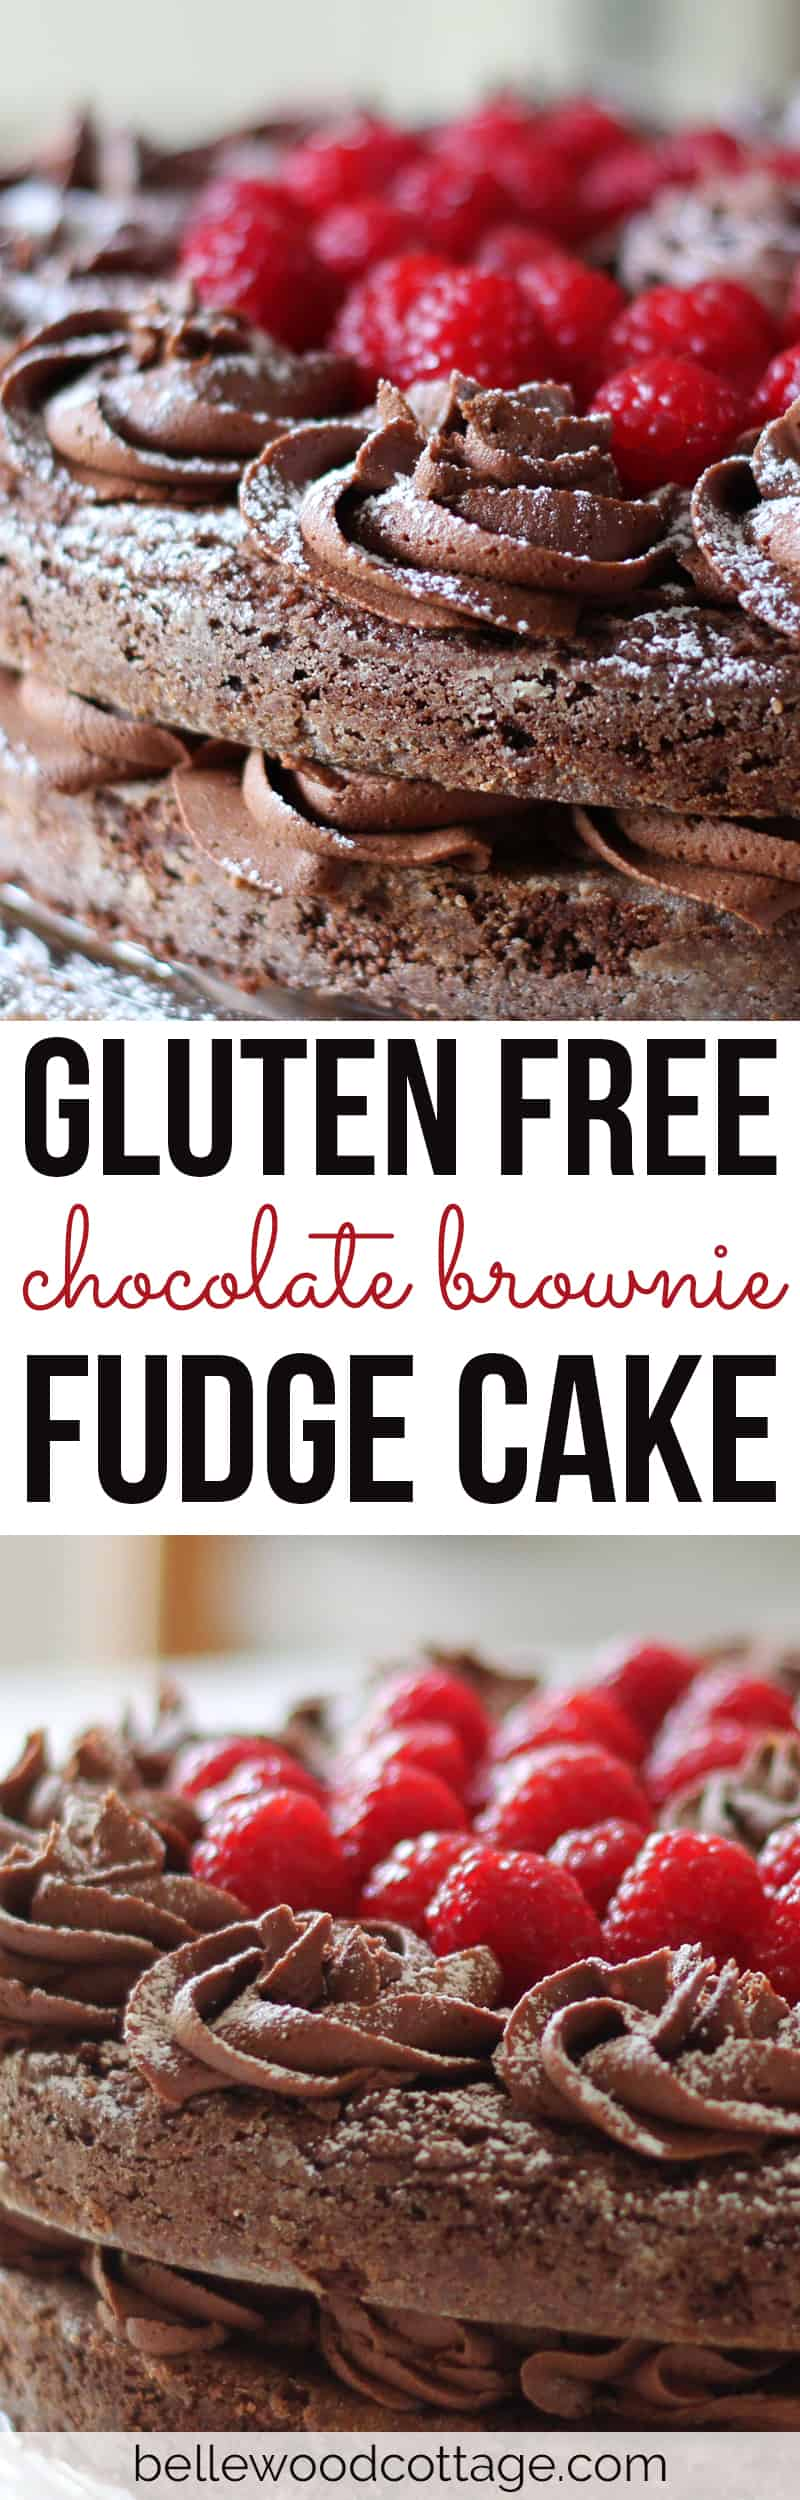 How to make a mouth-watering gluten free chocolate brownie fudge cake